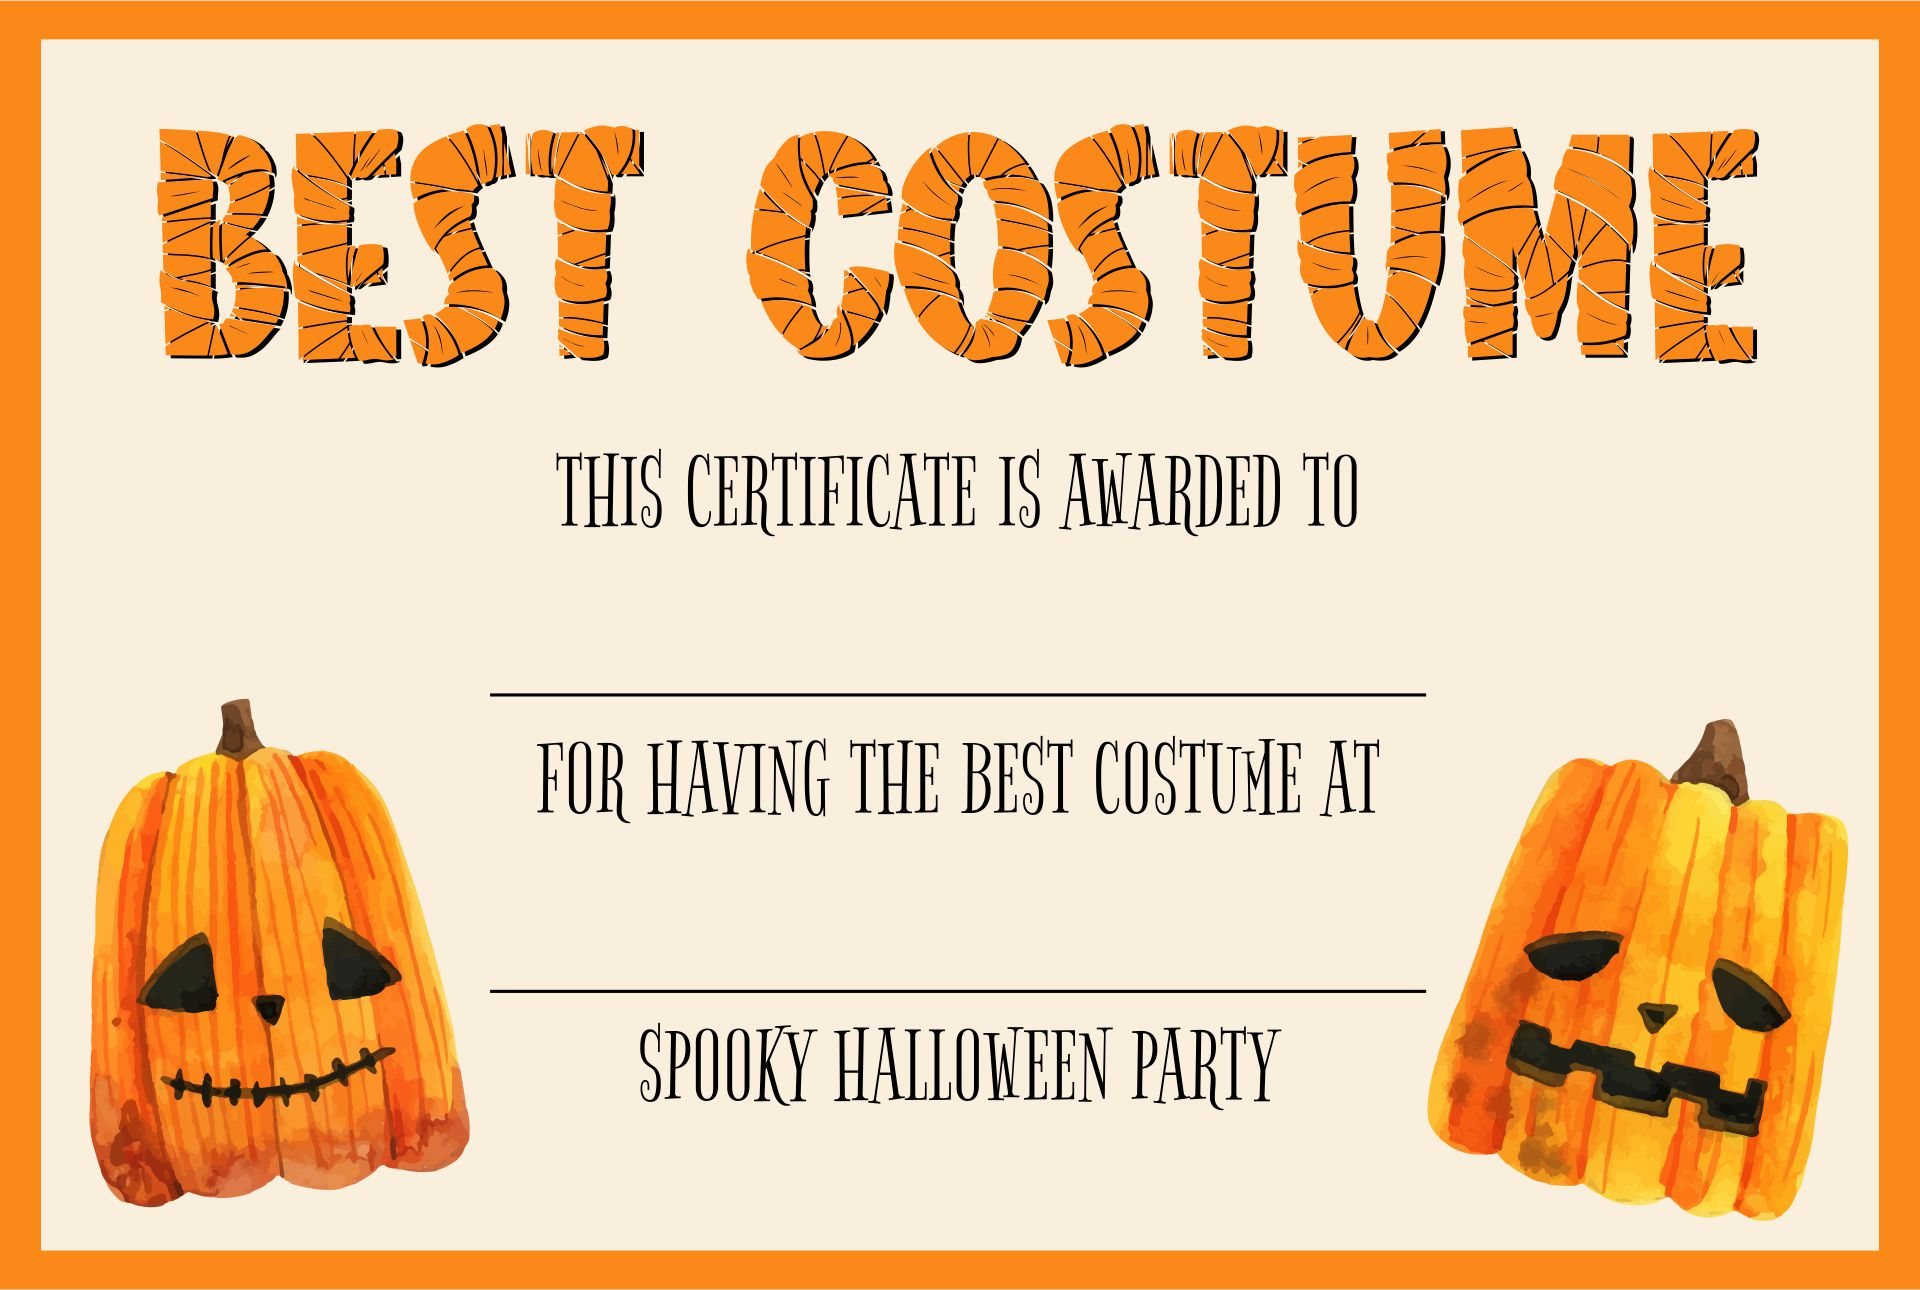 Costume Contest Certificates For Halloween With Clip Art